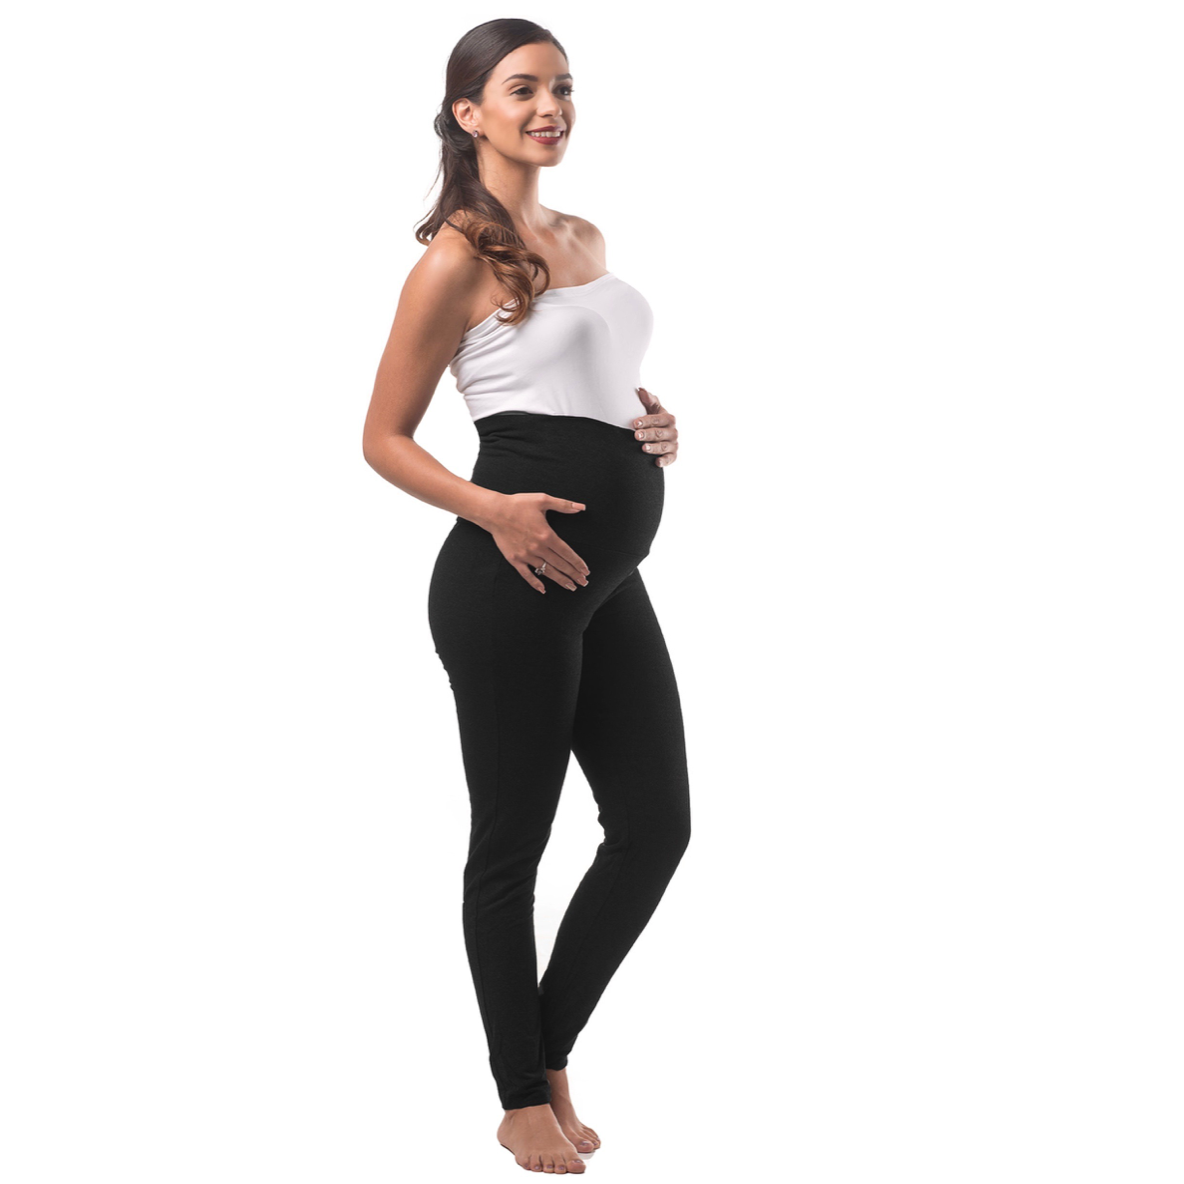 61786302018 Maternity Yoga Leggings for Tall Women (If Your Height is 5 9 and Over)